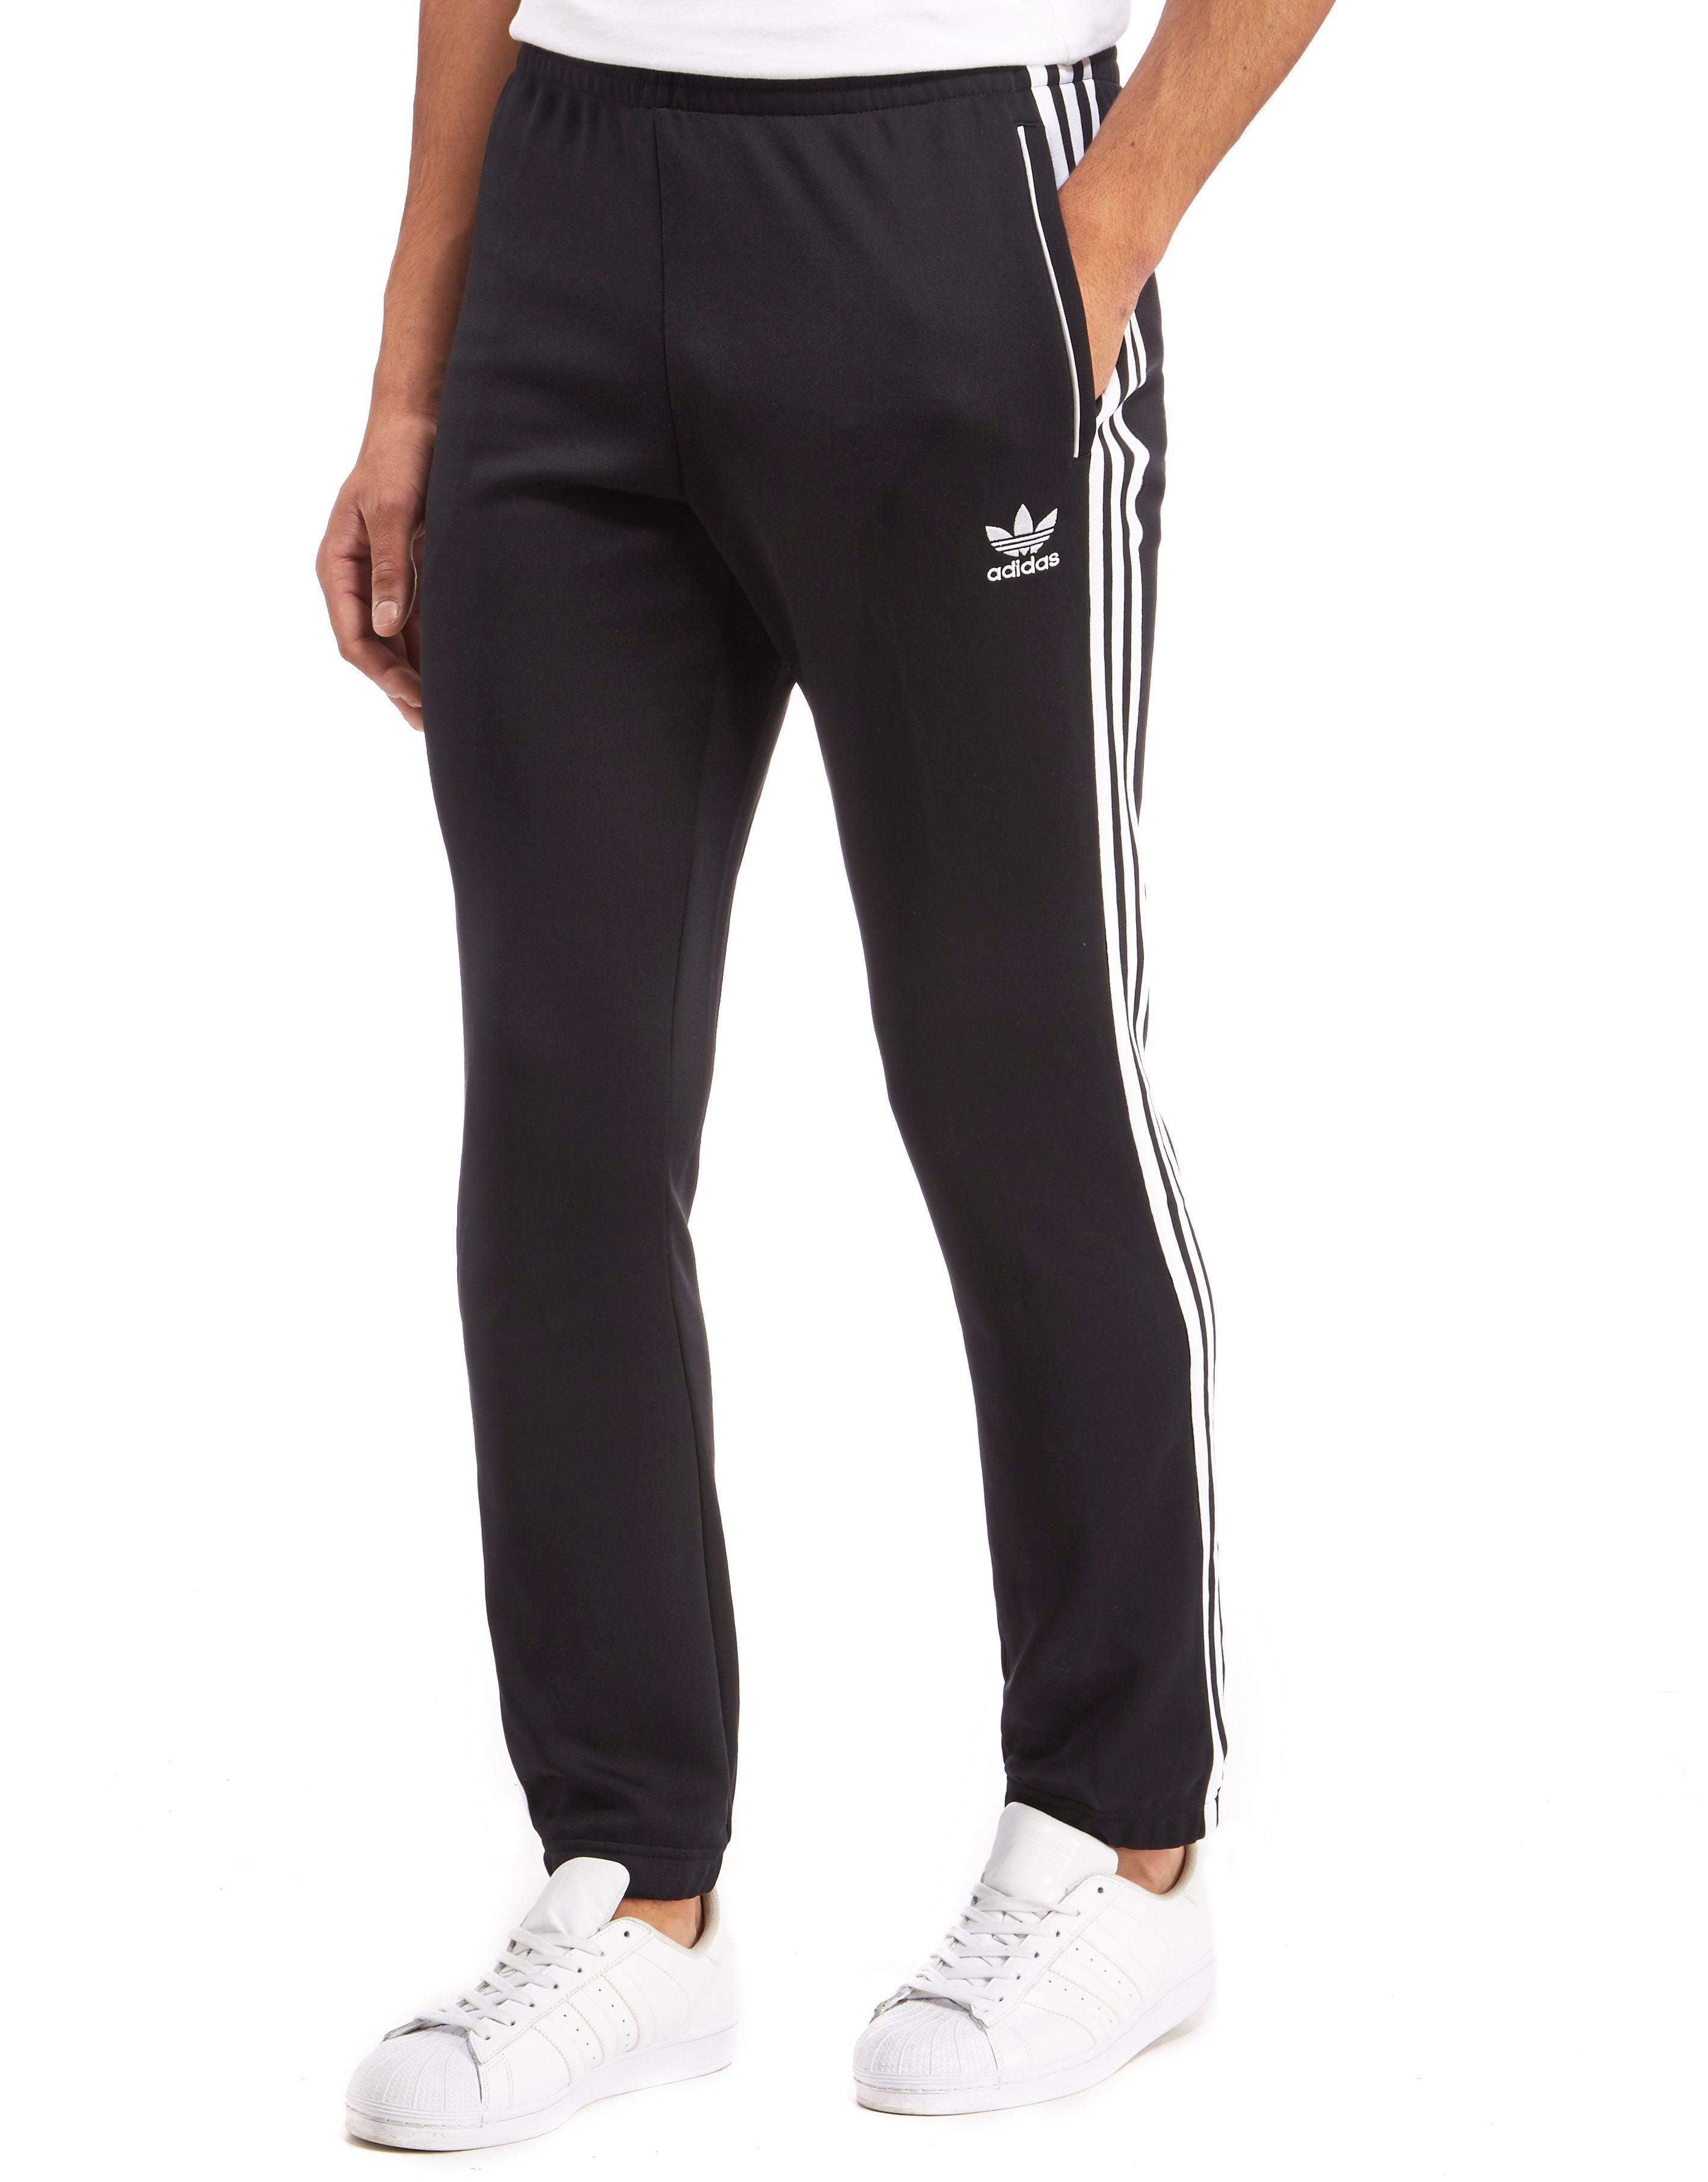 watch a5bd1 1e5ff adidas Originals 3-stripes Superstar Track Pants in Black for Men - Lyst